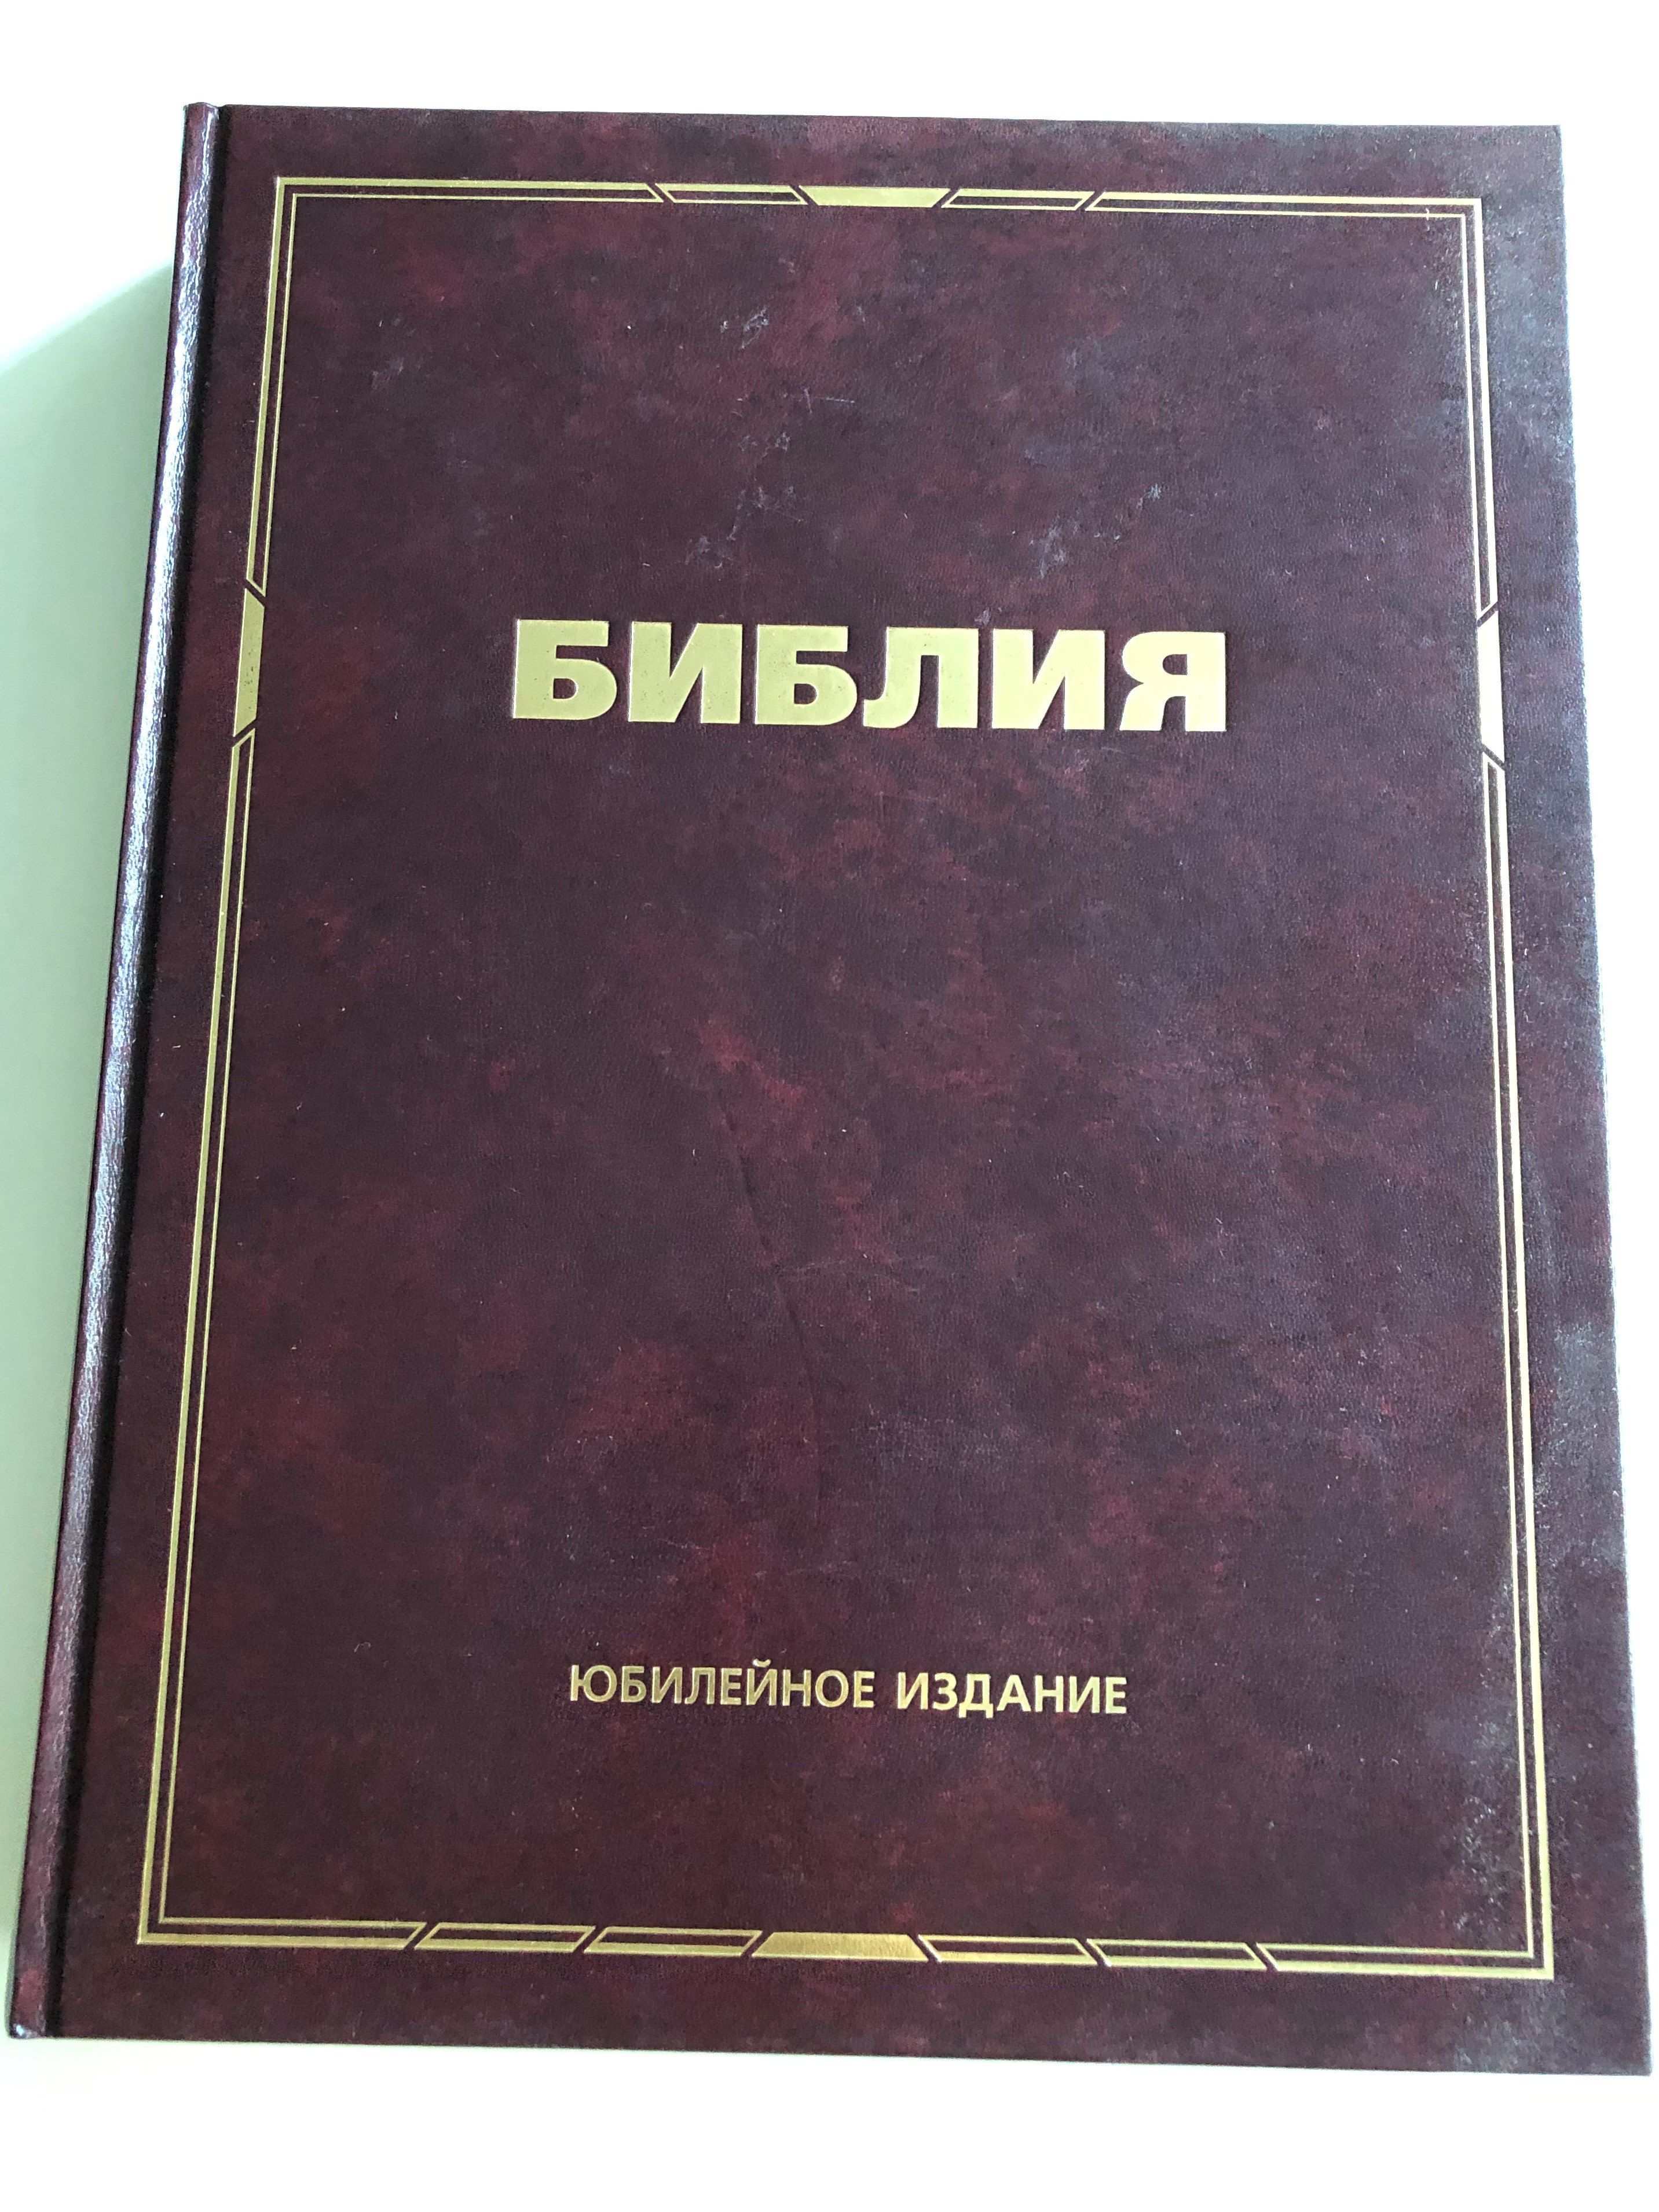 russian-language-protestant-canonized-holy-bible-anniversary-edition-hardcover-2000-light-in-the-east-glossary-color-detailed-maps-1-.jpg